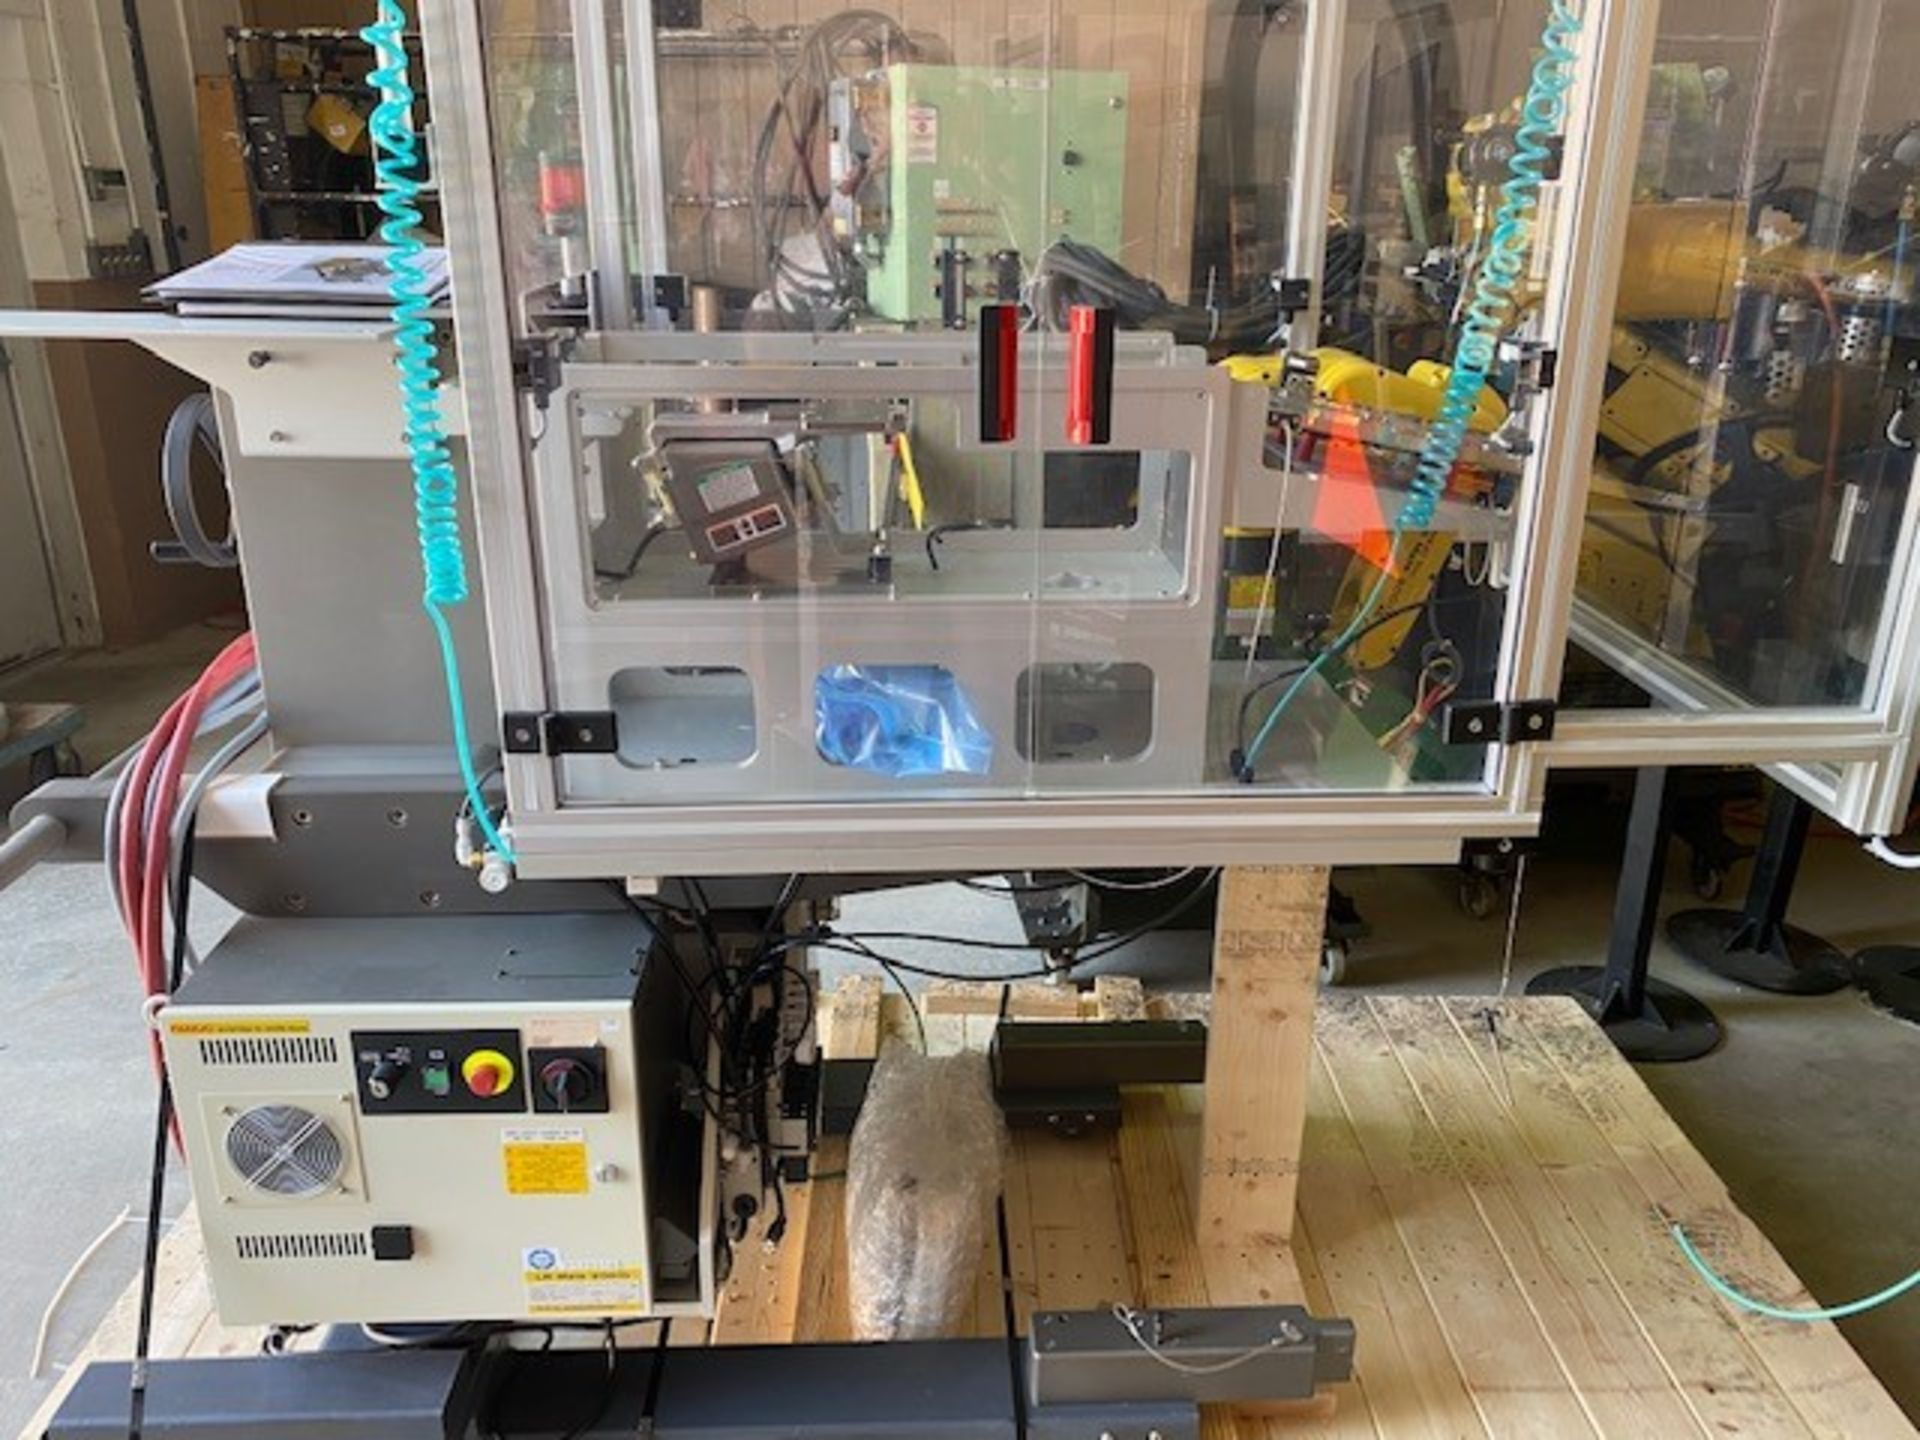 FANUC ROBOTIC VIBRATORY CELL LR MATE 200iD/4S WITH R30iB CONTROL AND ALLEN BRADLEY PLC HIM SN 176518 - Image 7 of 8